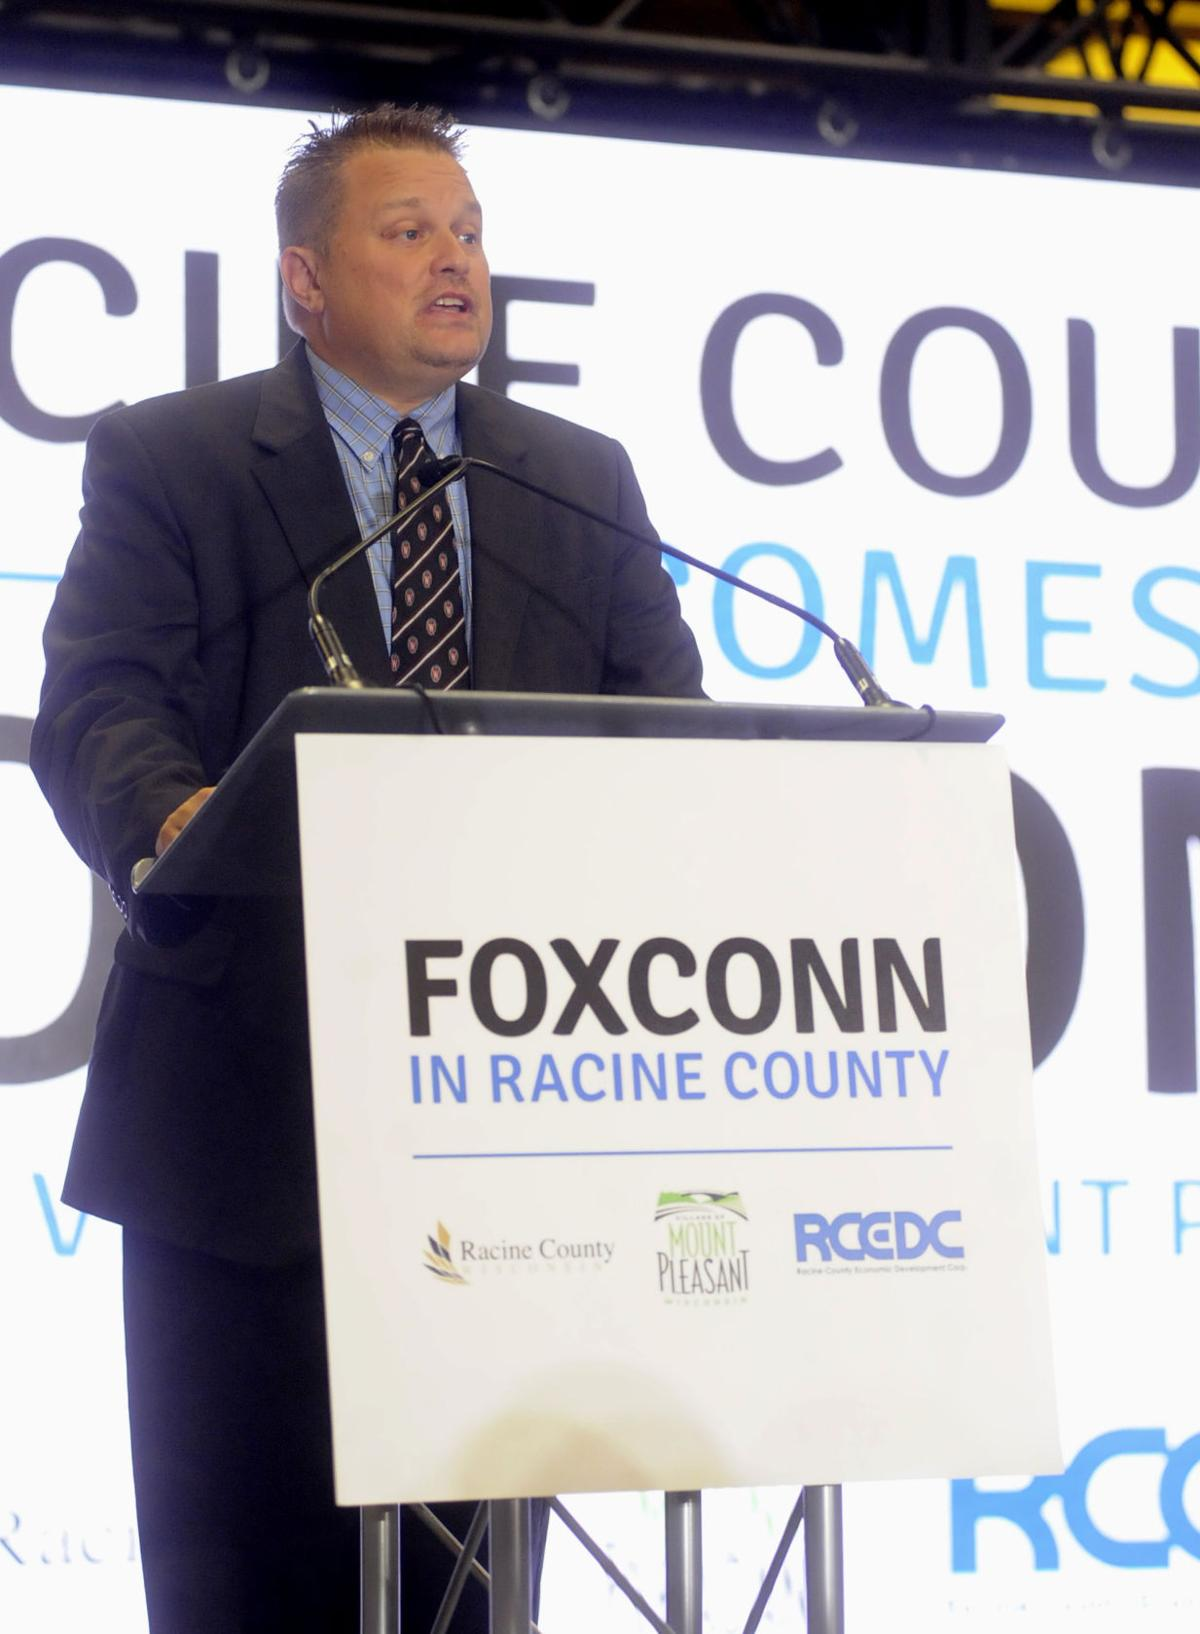 Foxconn Mount Pleasant